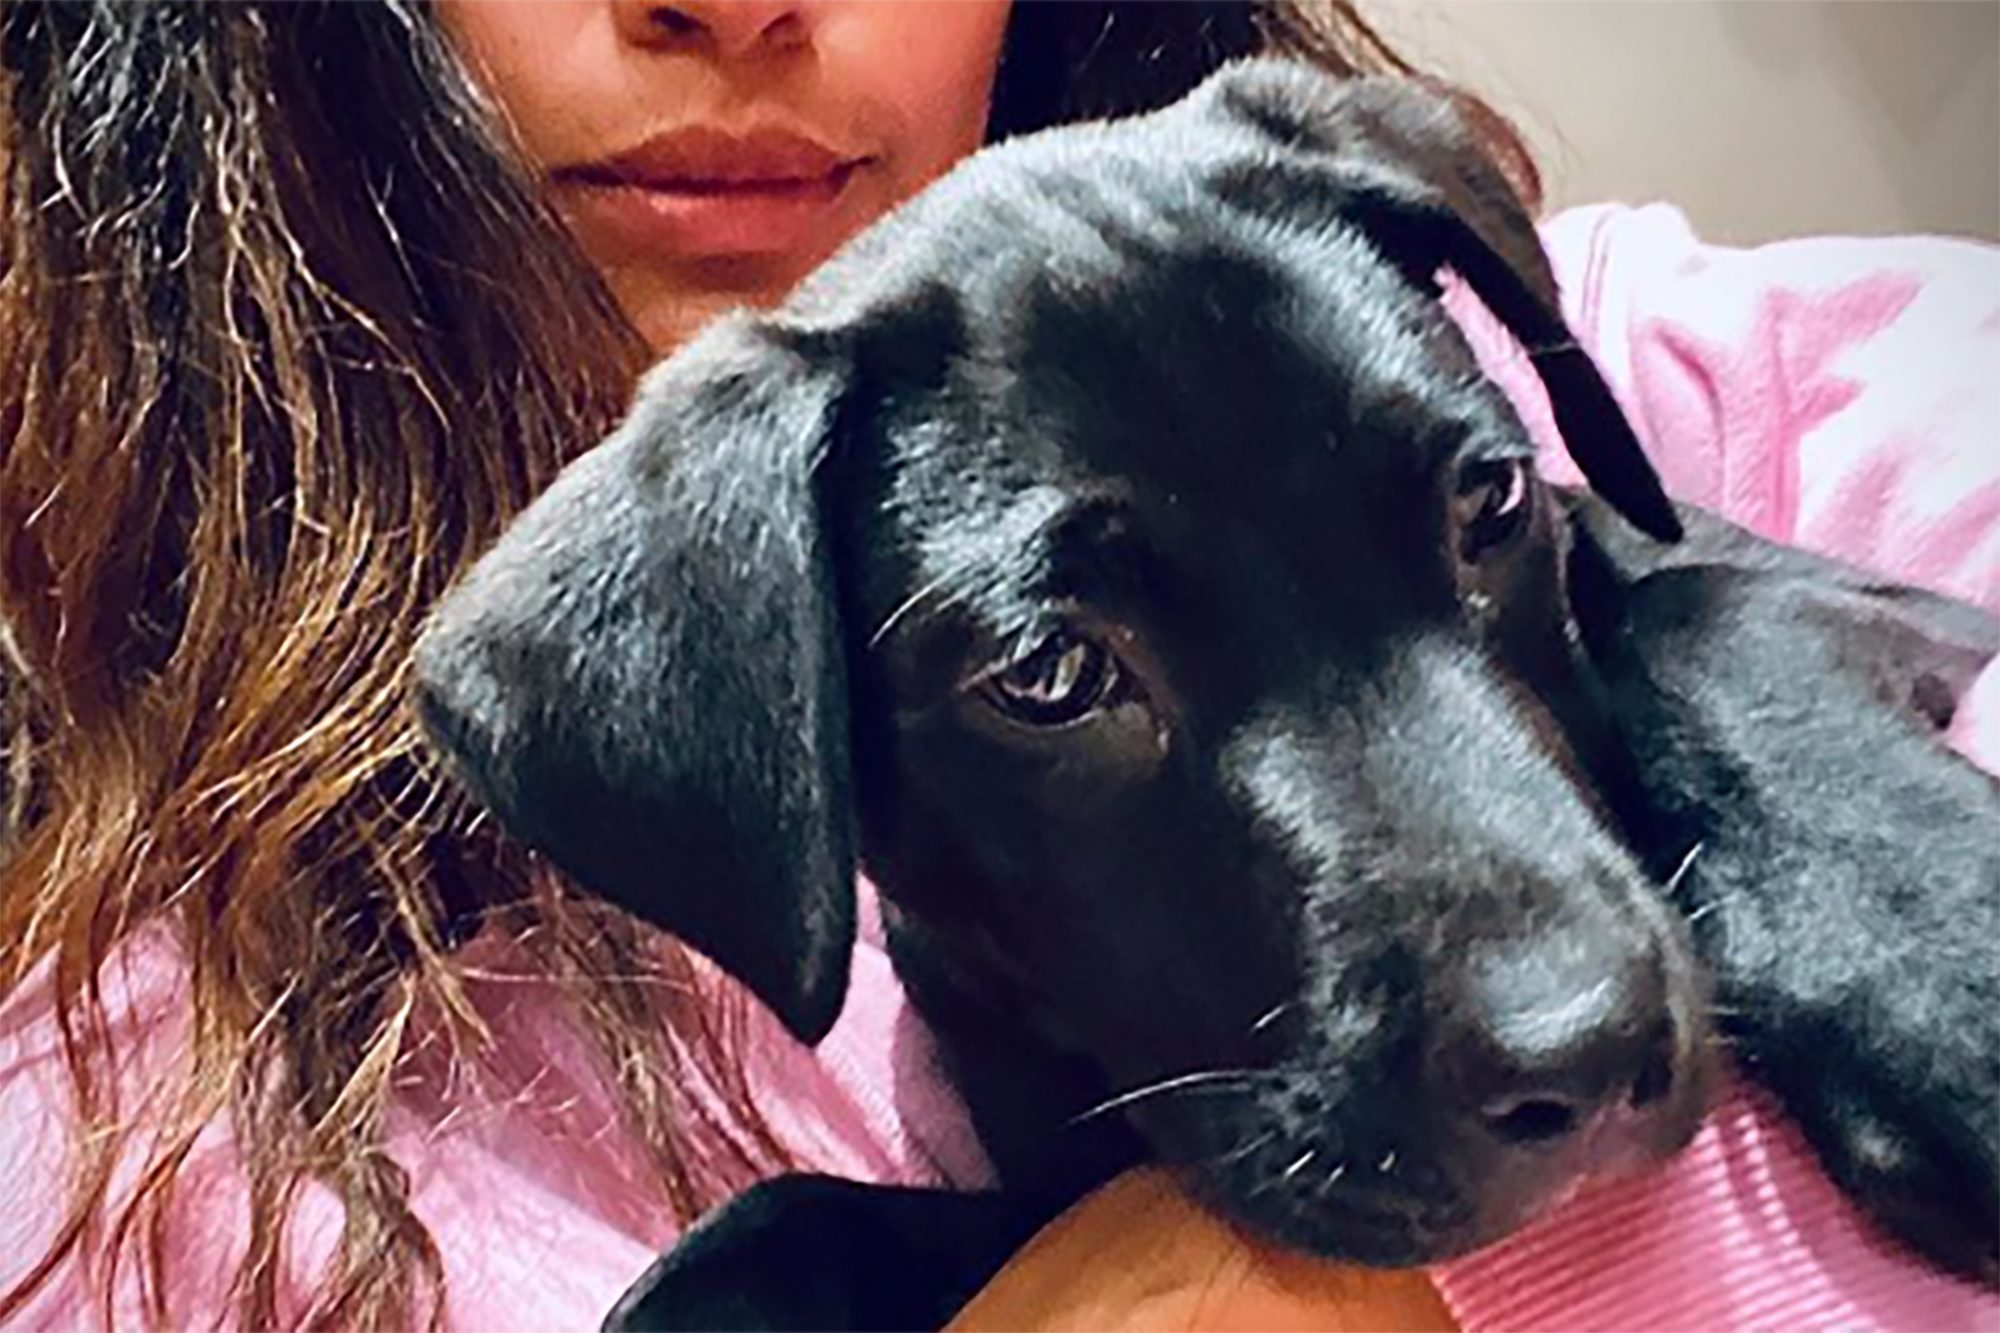 Matthew McConaughey's wife, Camila Alves, holding their new puppy